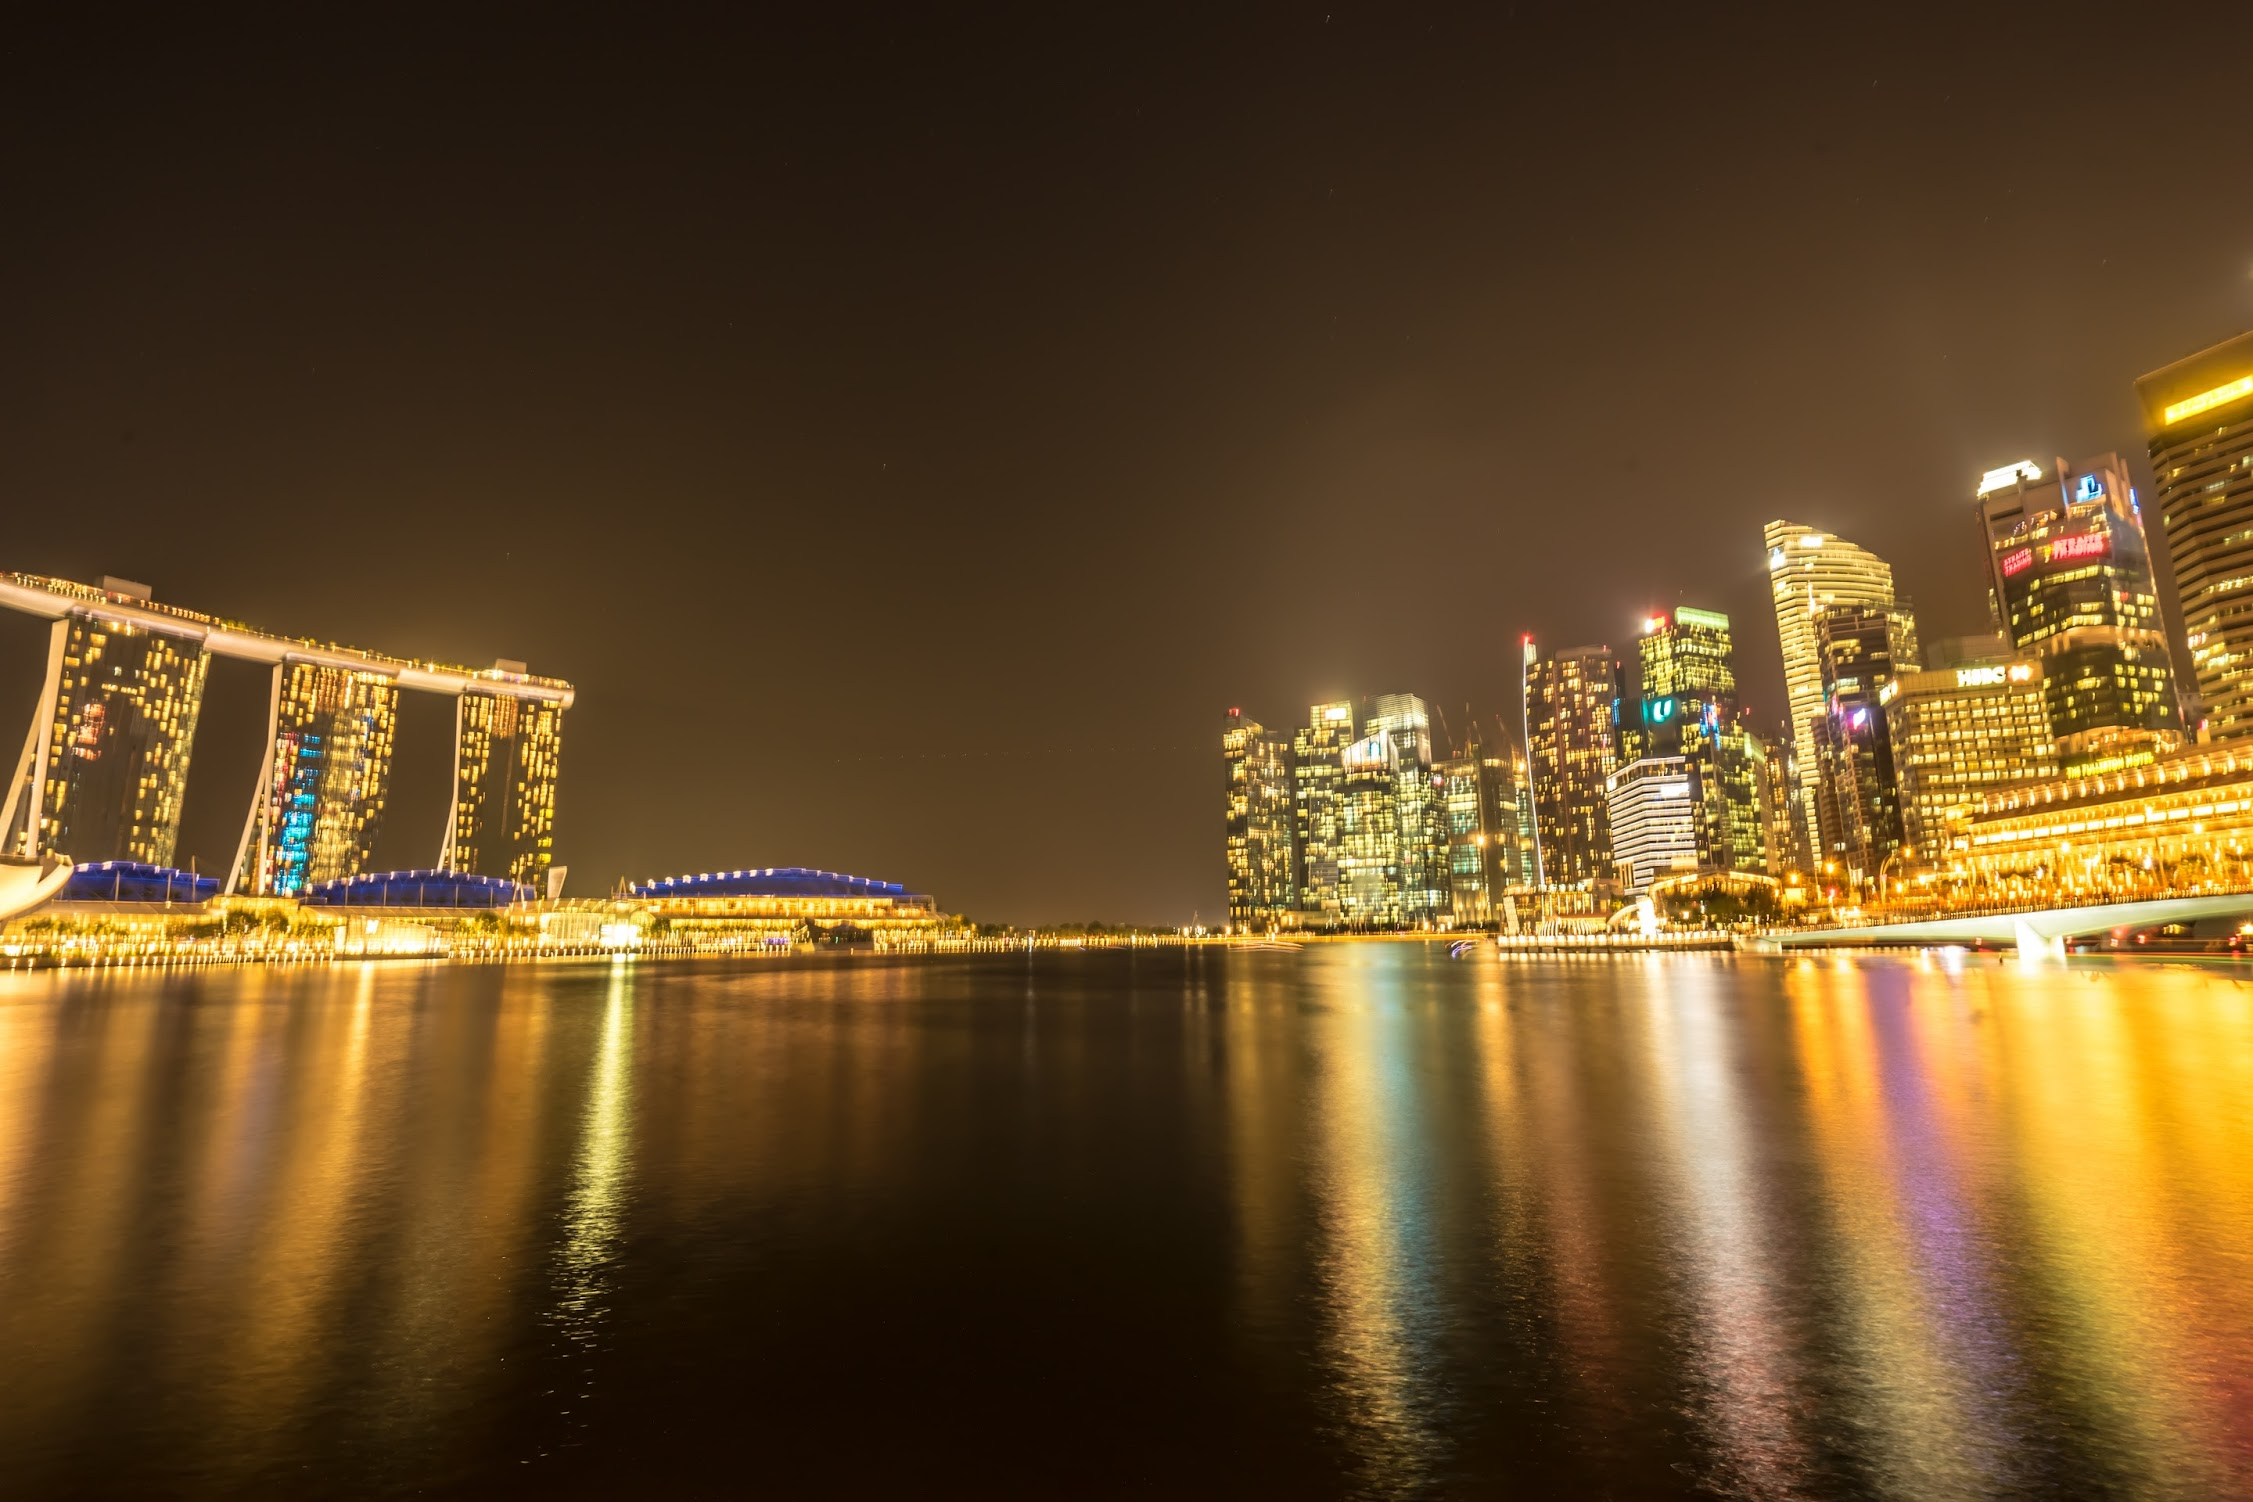 Singapore Marina Bay Sands night view5